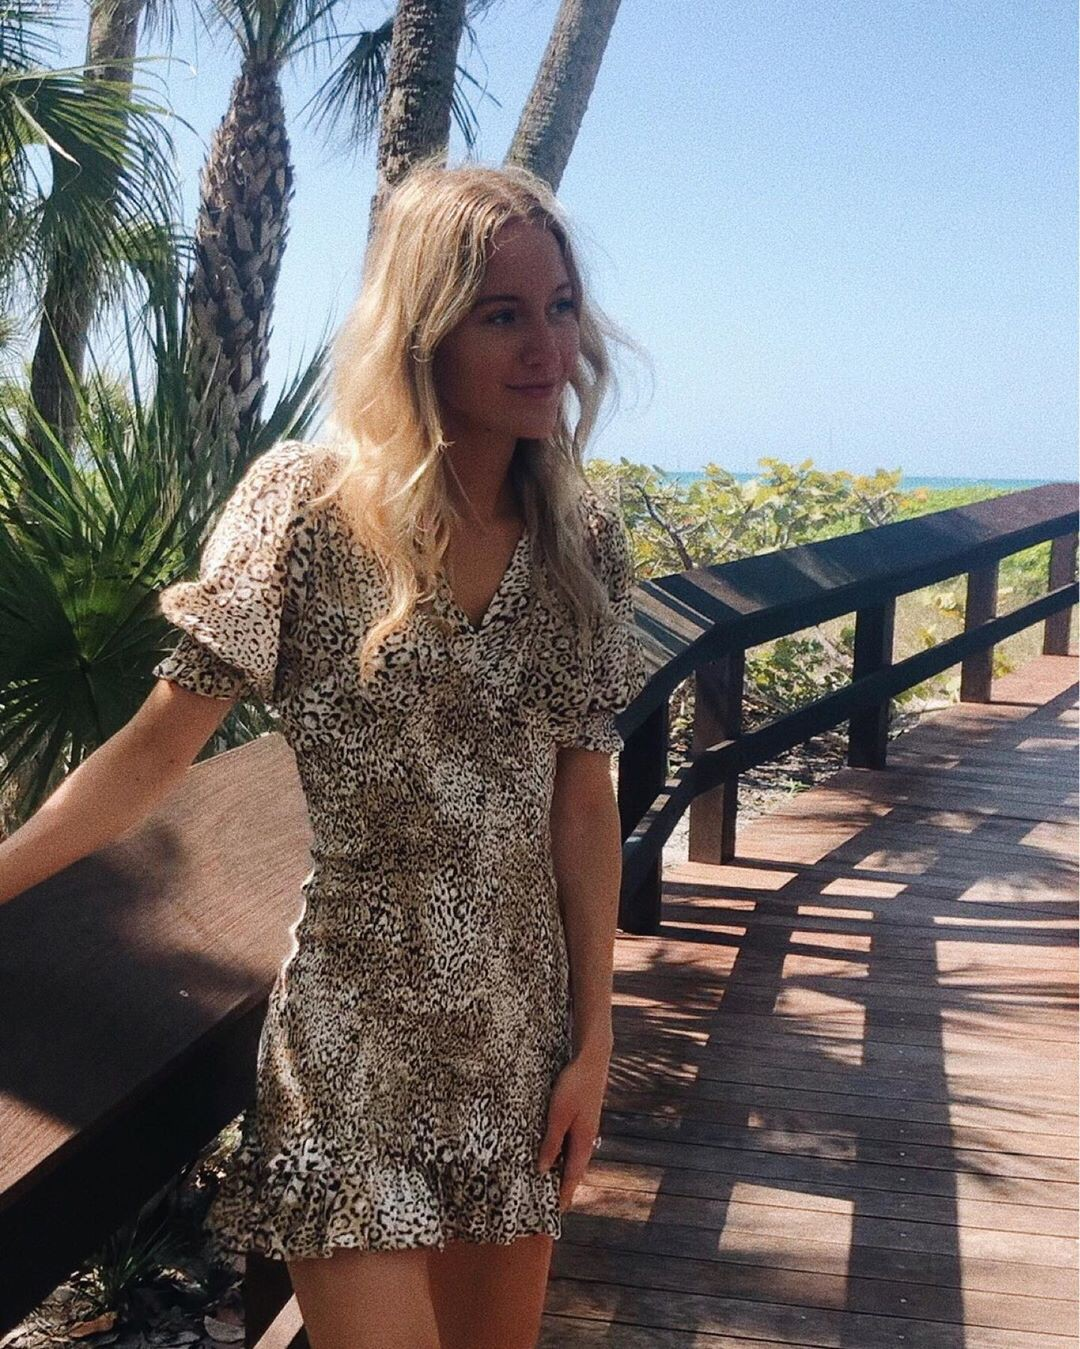 Laura Hudson dress colour outfit ideas 2020, legs photo, blond hairstyle